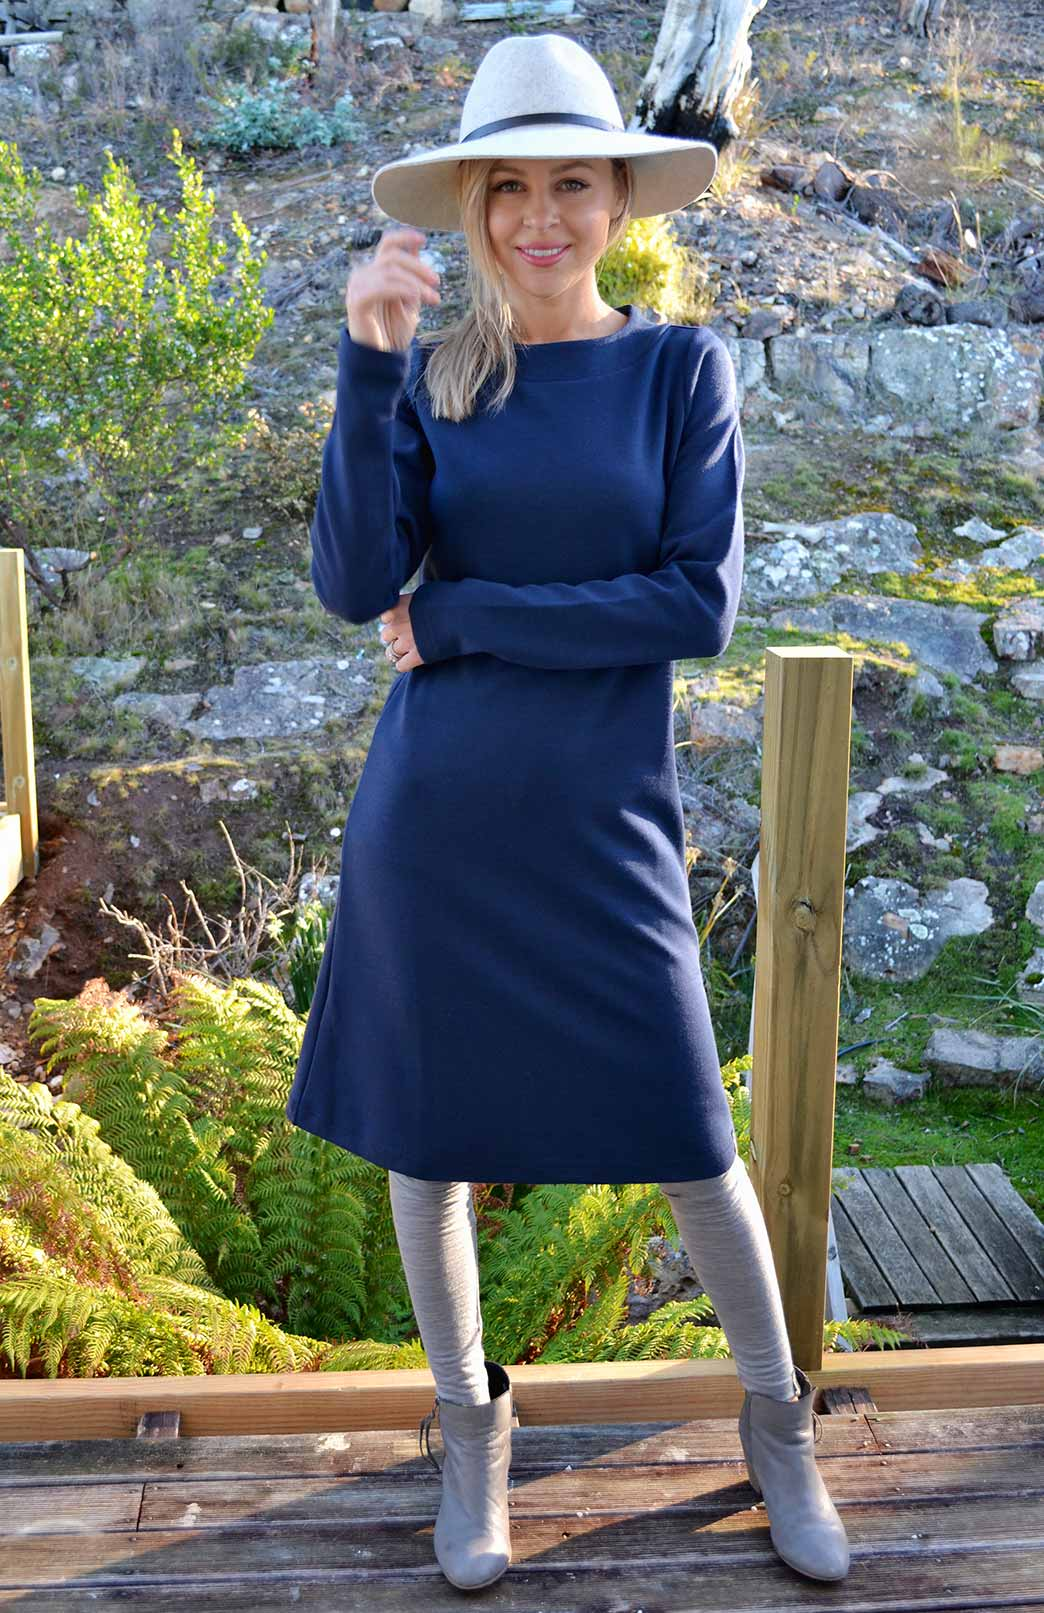 Sascha Straight Dress - Women's Superfine Merino Wool Indigo Long Sleeved Heavyweight Winter Dress - Smitten Merino Tasmania Australia